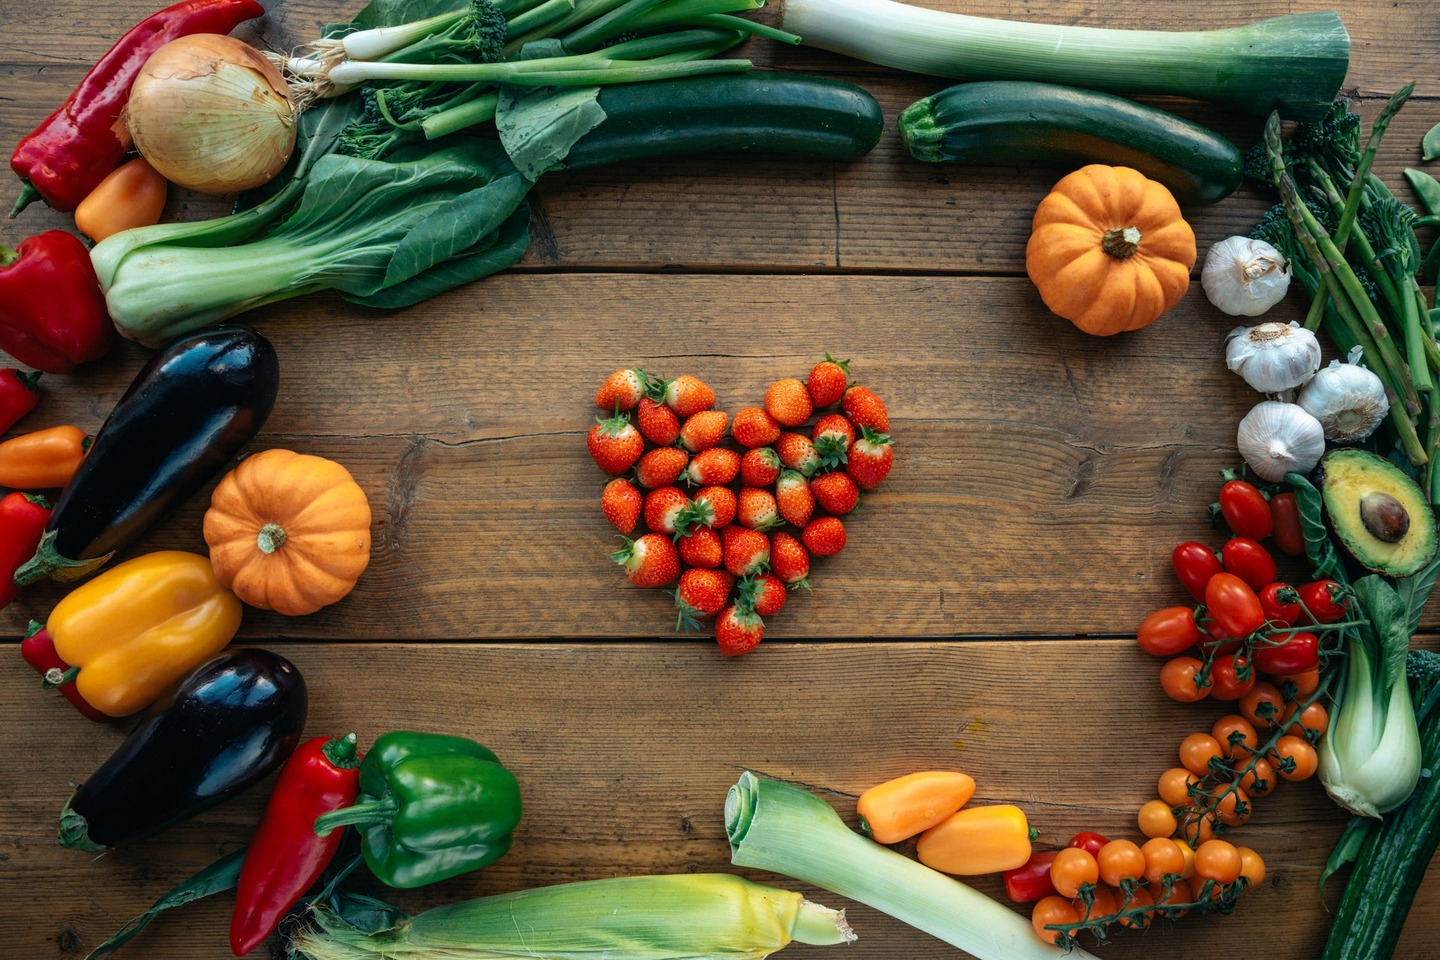 Various vegetables surrounding a heart made out of strawberries